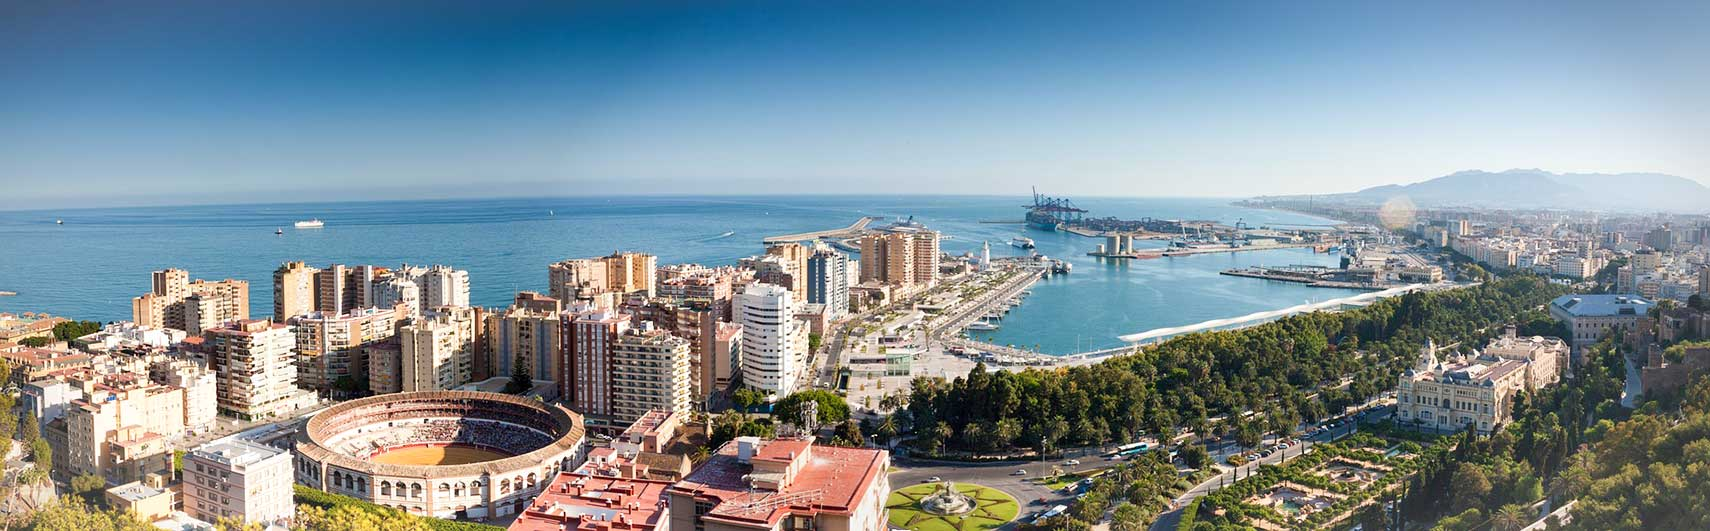 Málaga, port city at Costa del Sol, Spain